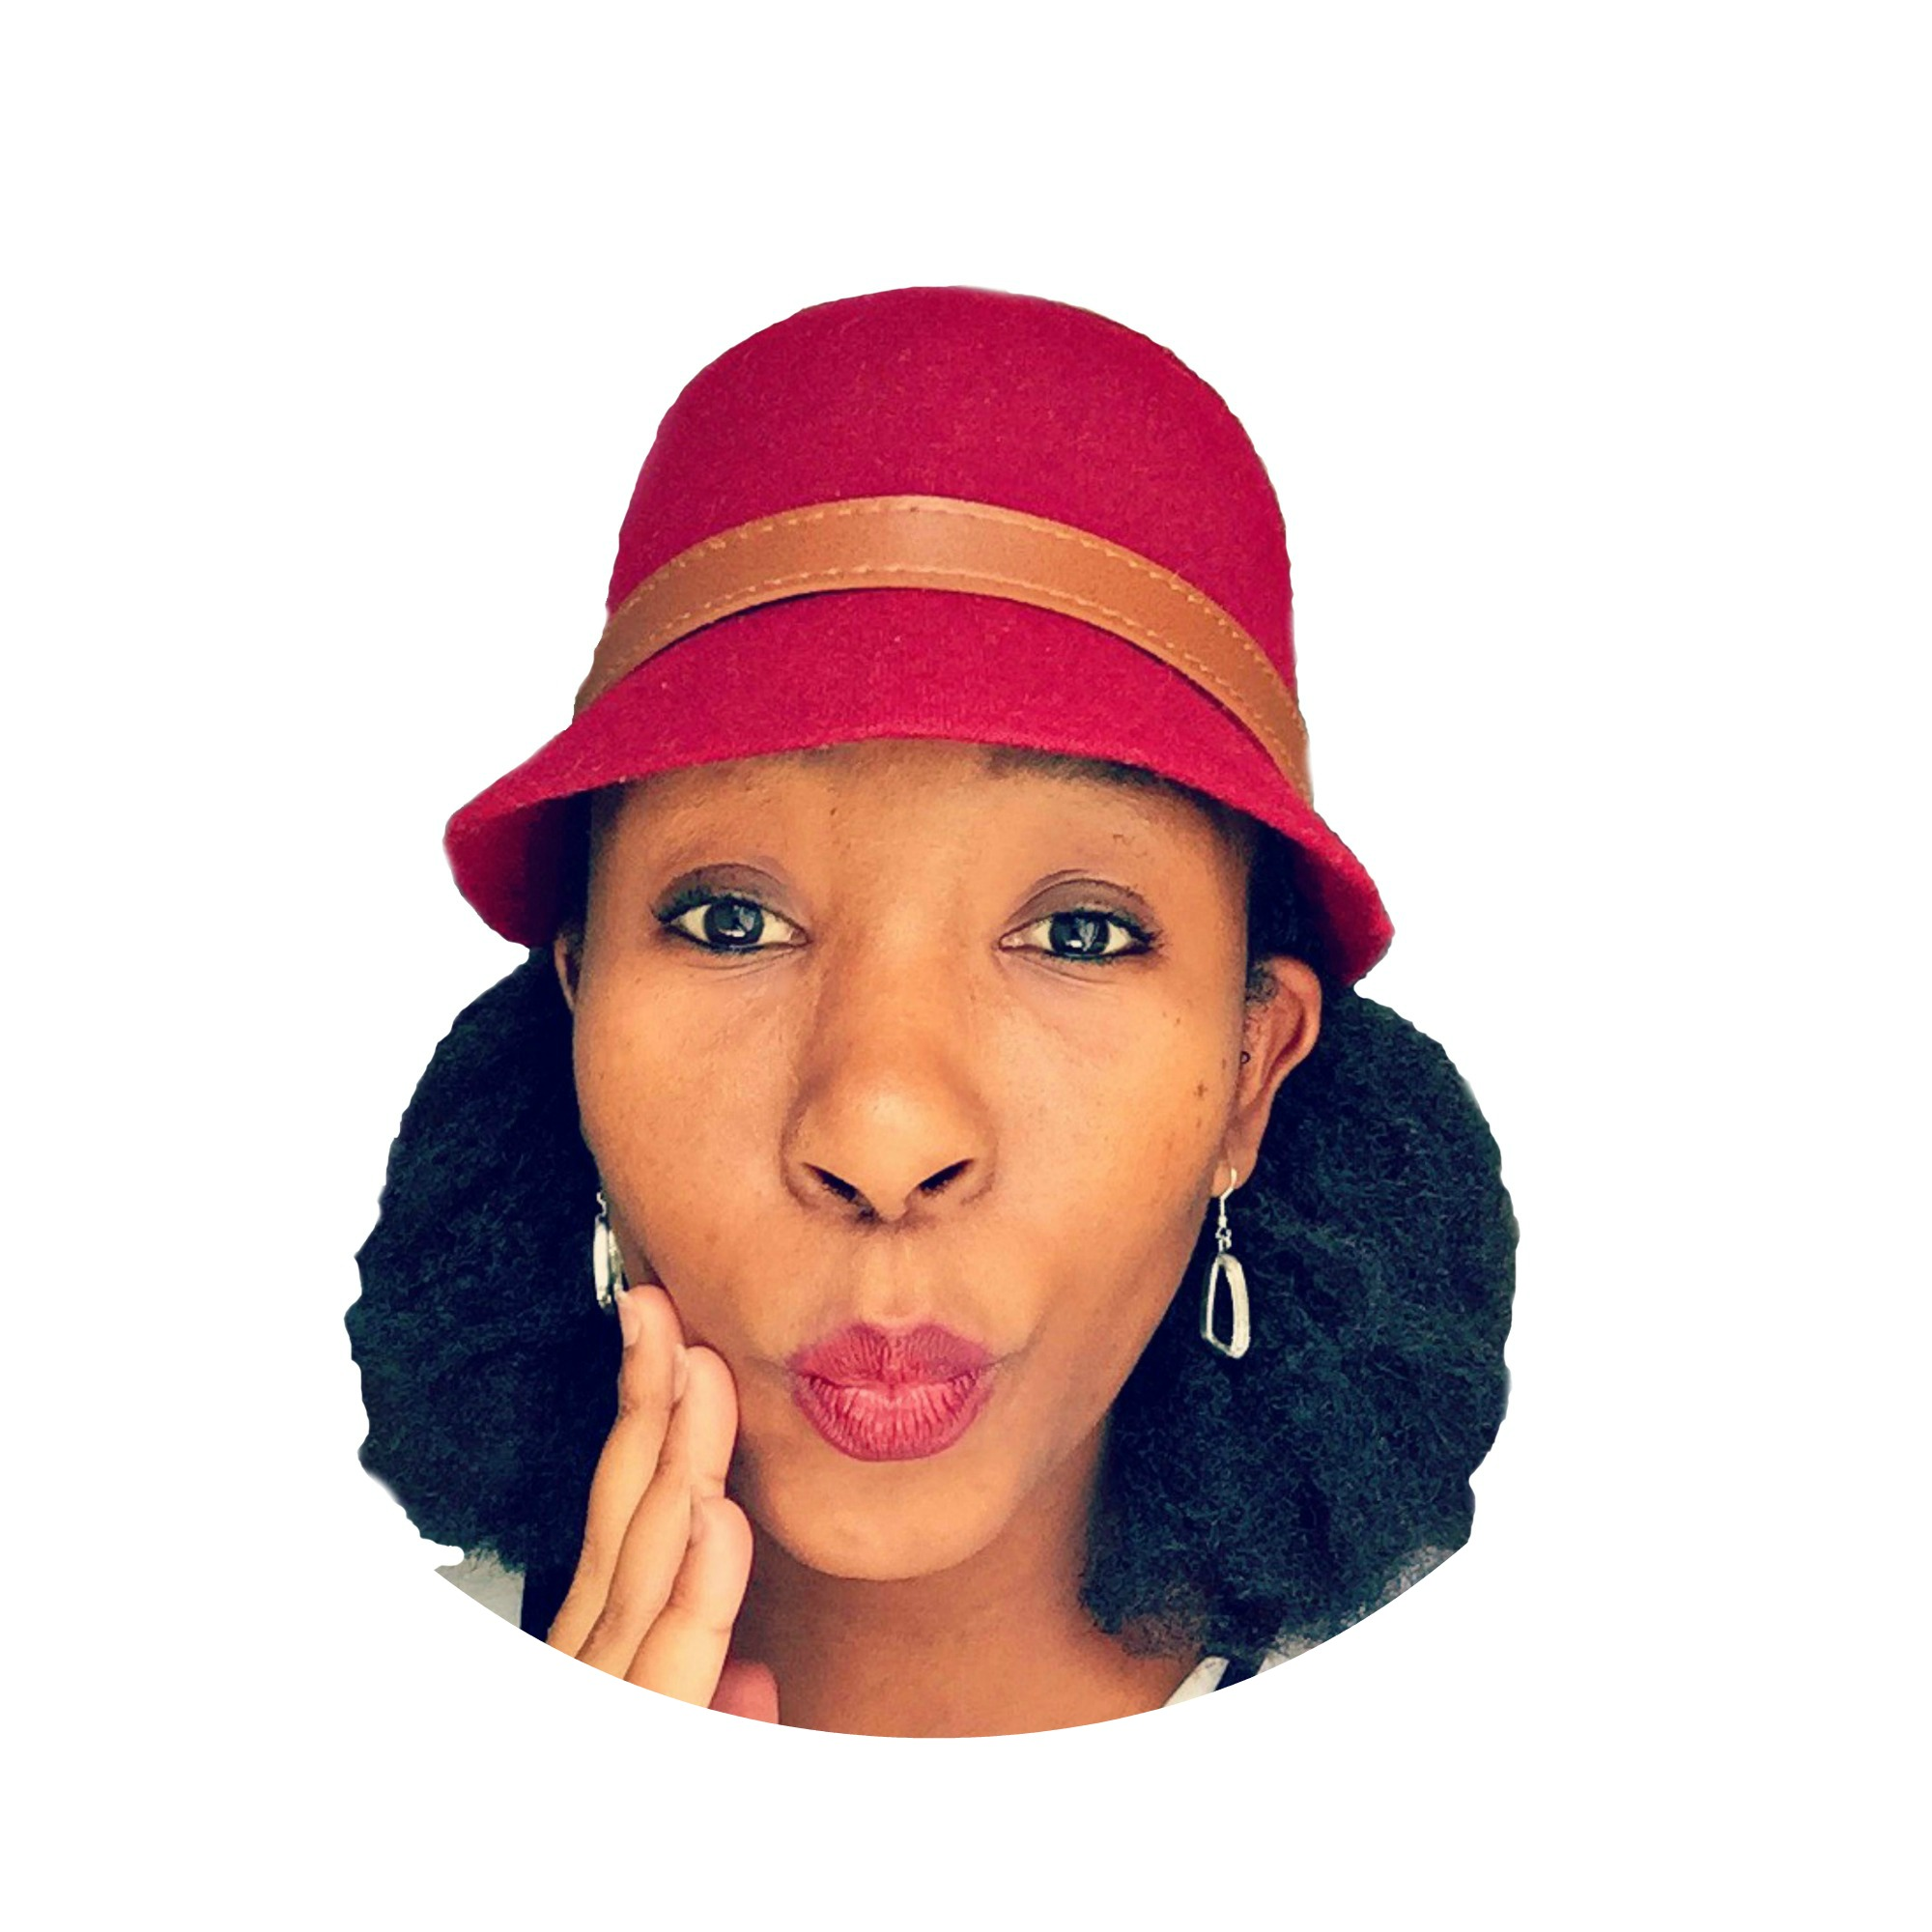 Nonhle Sibiya guest post on The Lady Boss League. Dream a